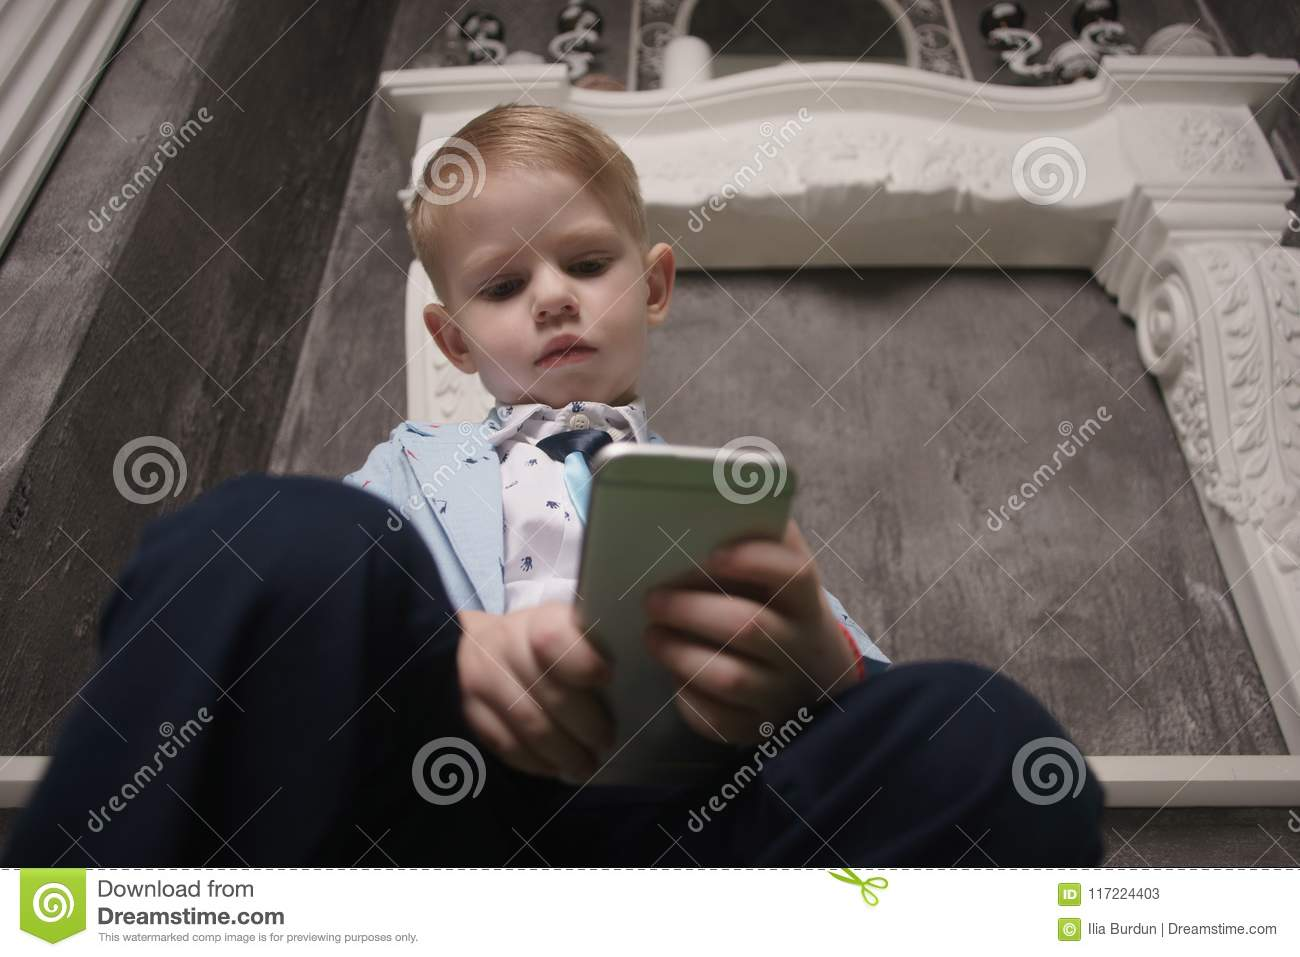 Boy playing smartphone on bed. watching smartphone. kid use phone and play game. child use mobile. addicted game and